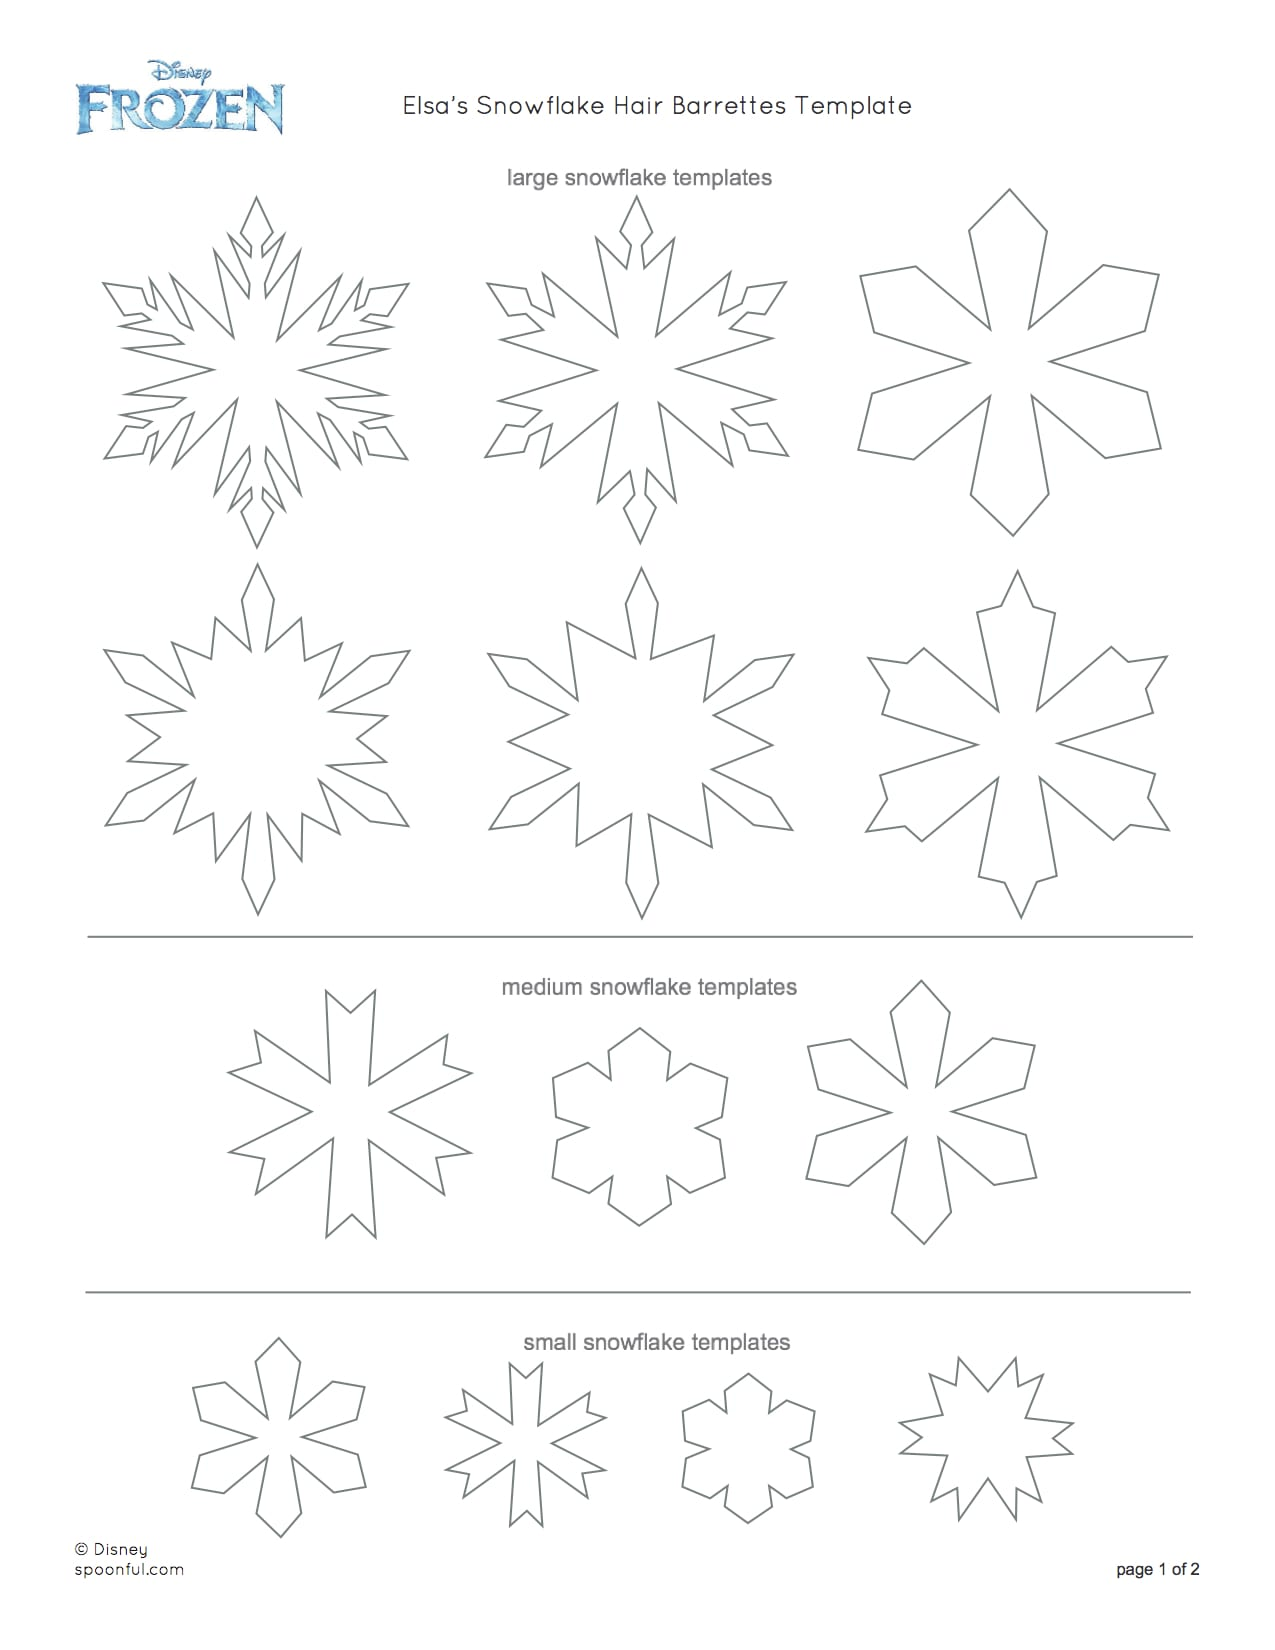 How To Draw A Snowflake From Frozen : snowflake, frozen, Snowflake, Barrettes!, Make!, Street, Mouse